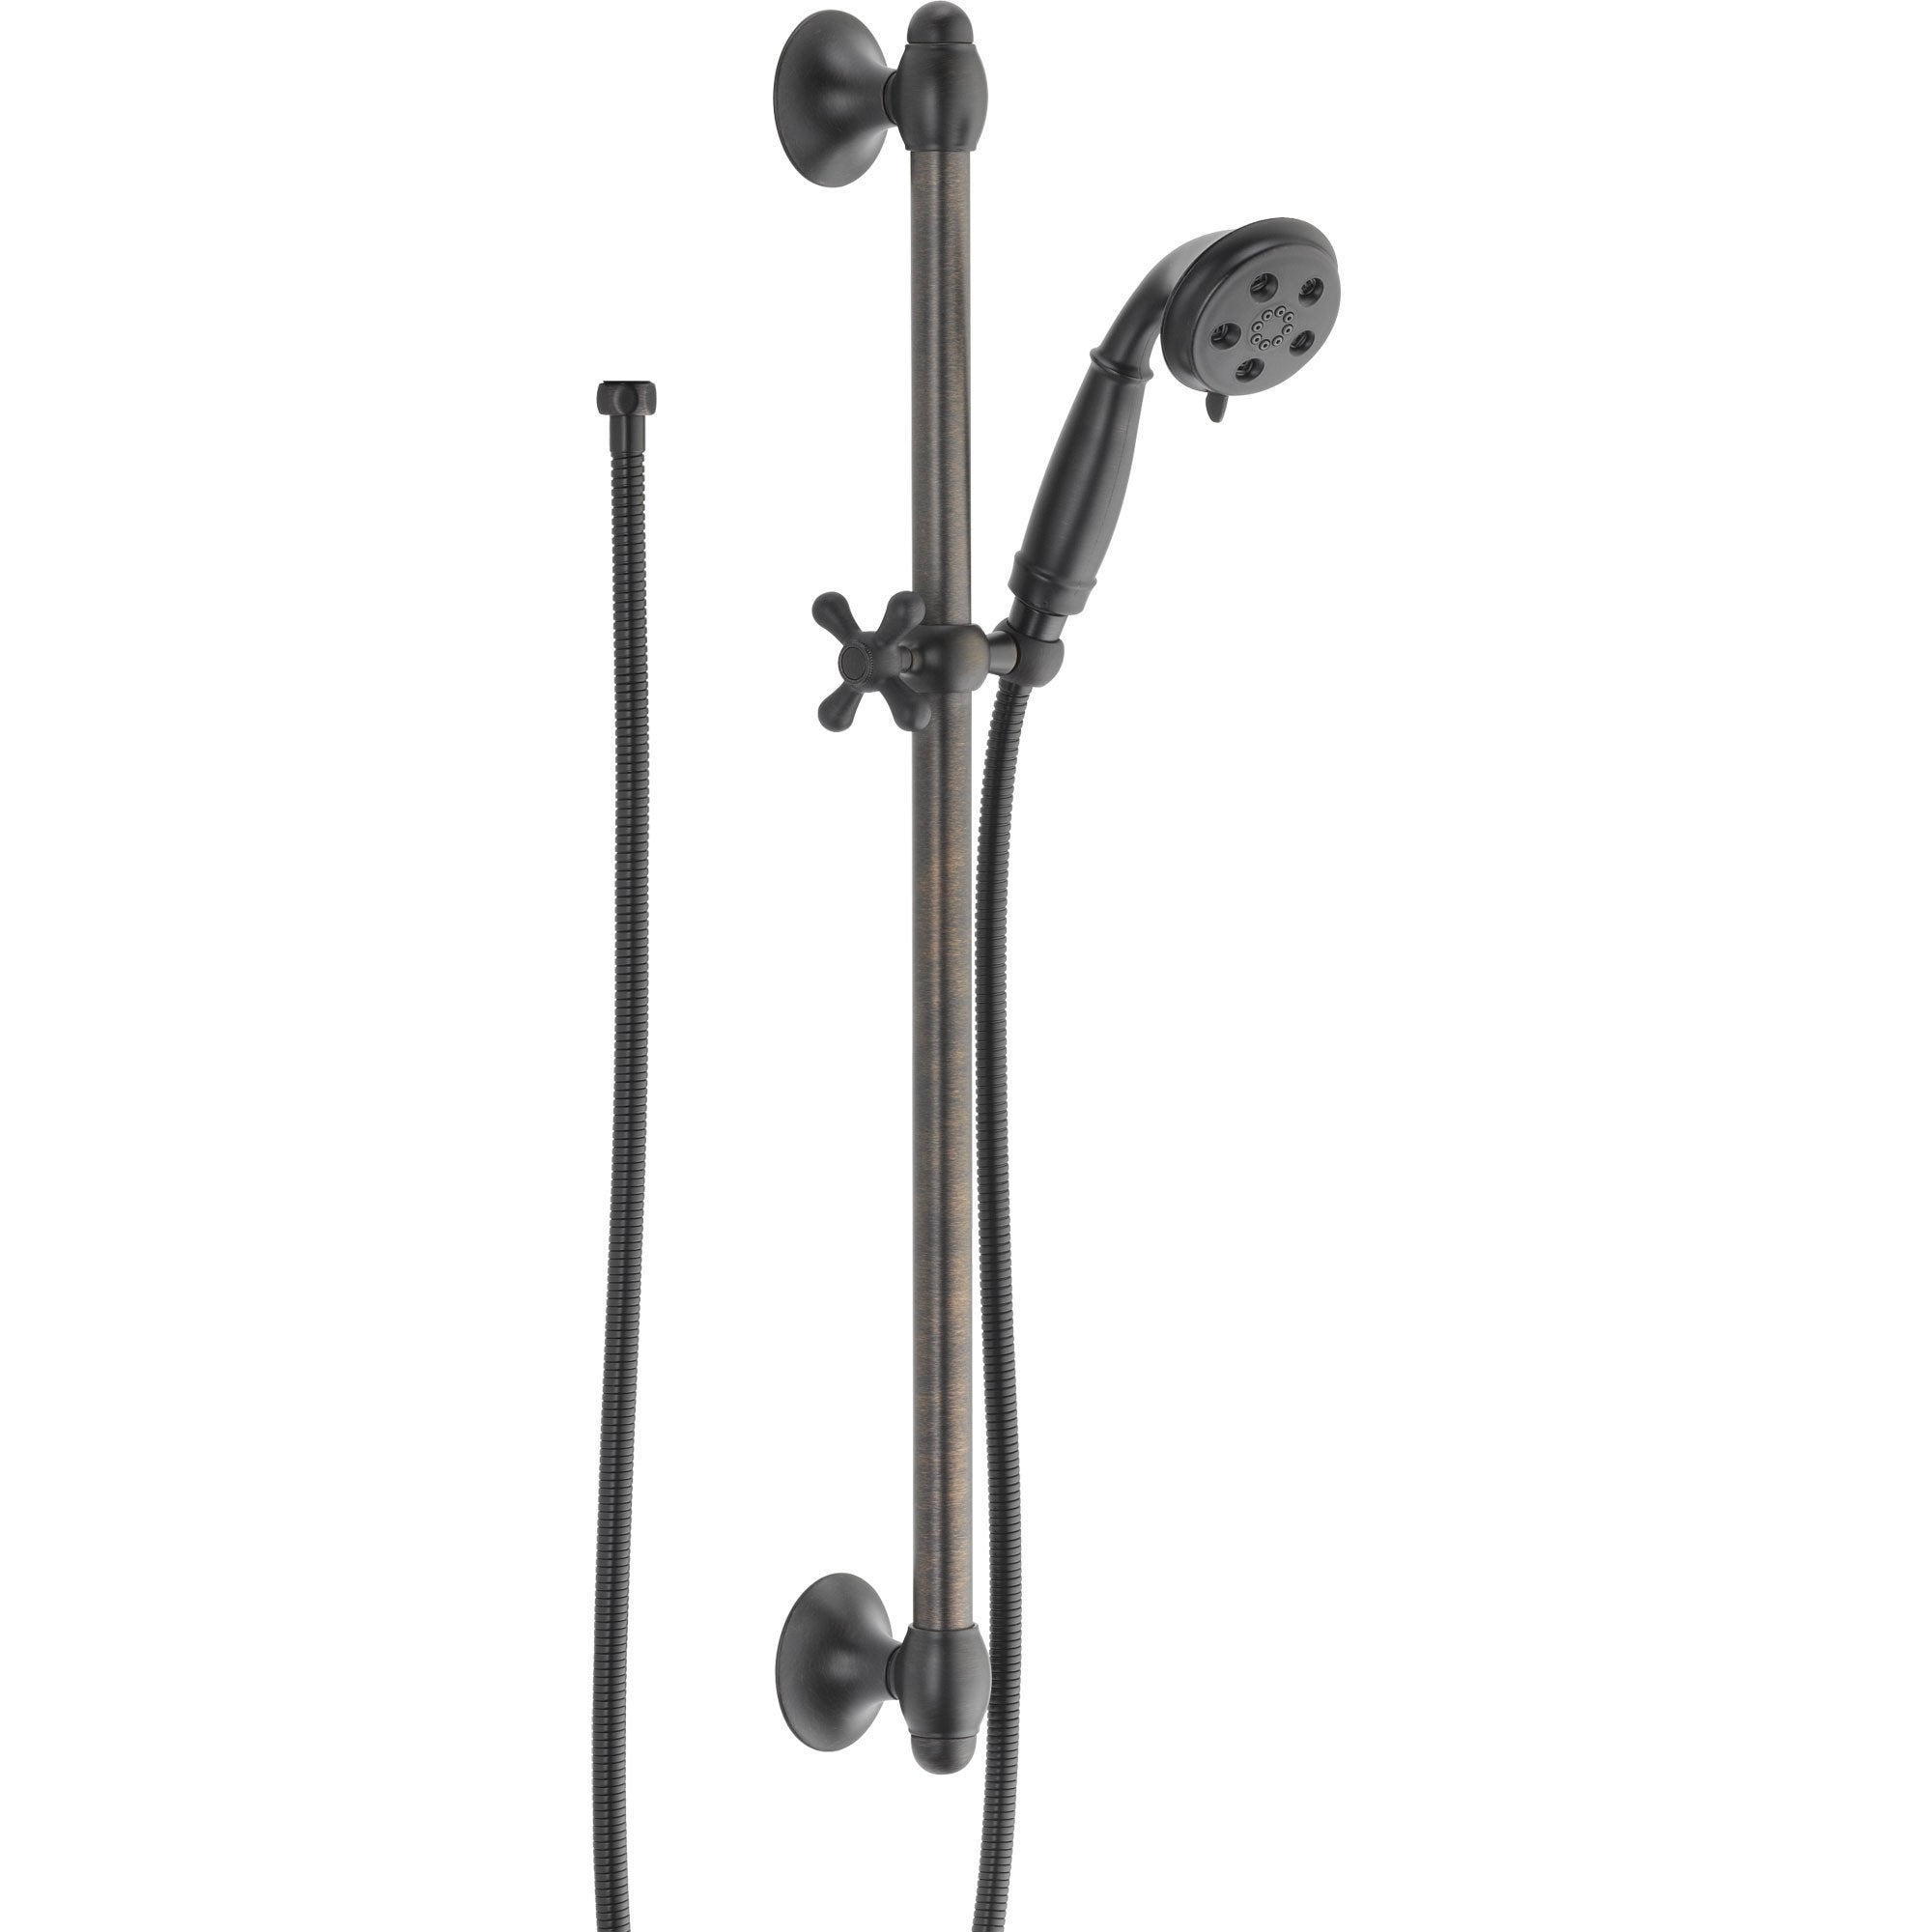 Delta H2Okinetic 3-Spray Handshower with Slide Bar in Venetian Bronze 604243